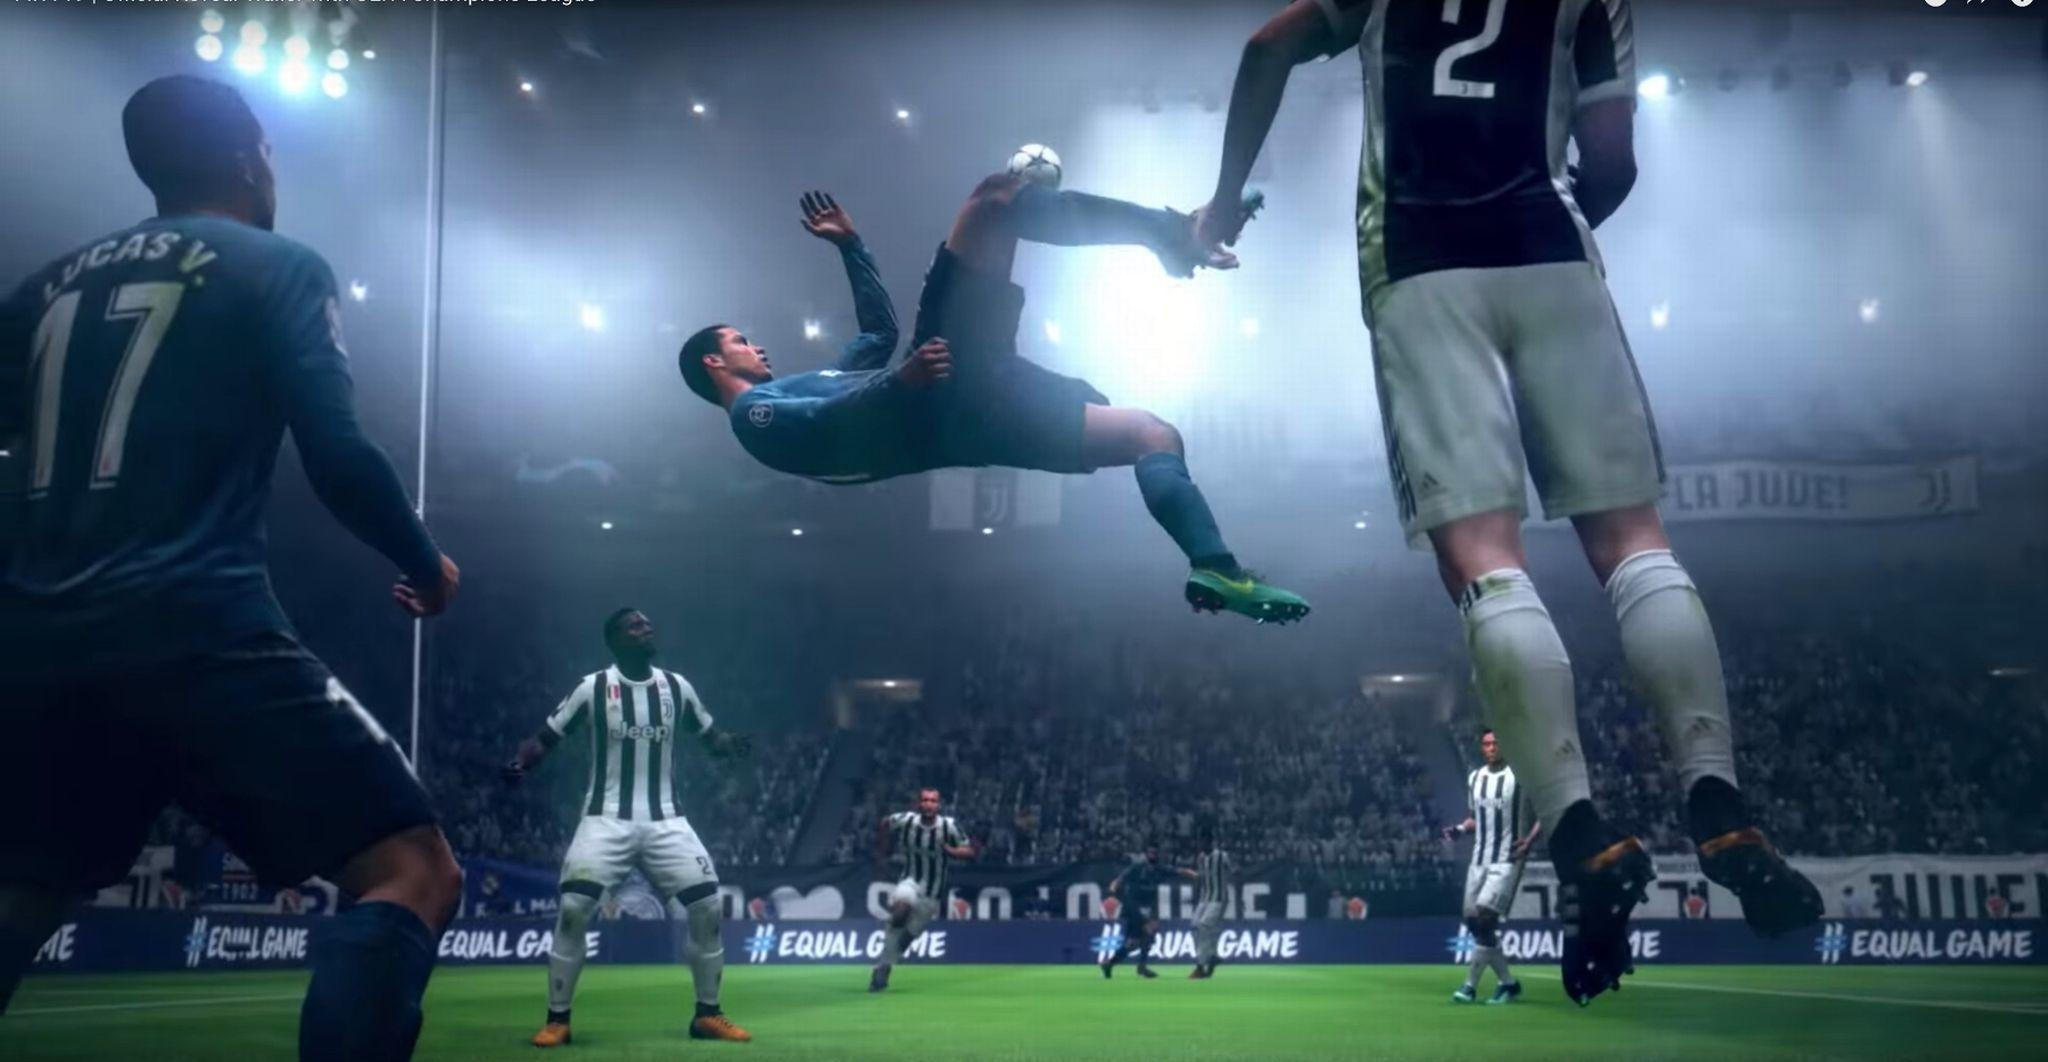 EA Soports will use the event to unveil Ultimate Team news